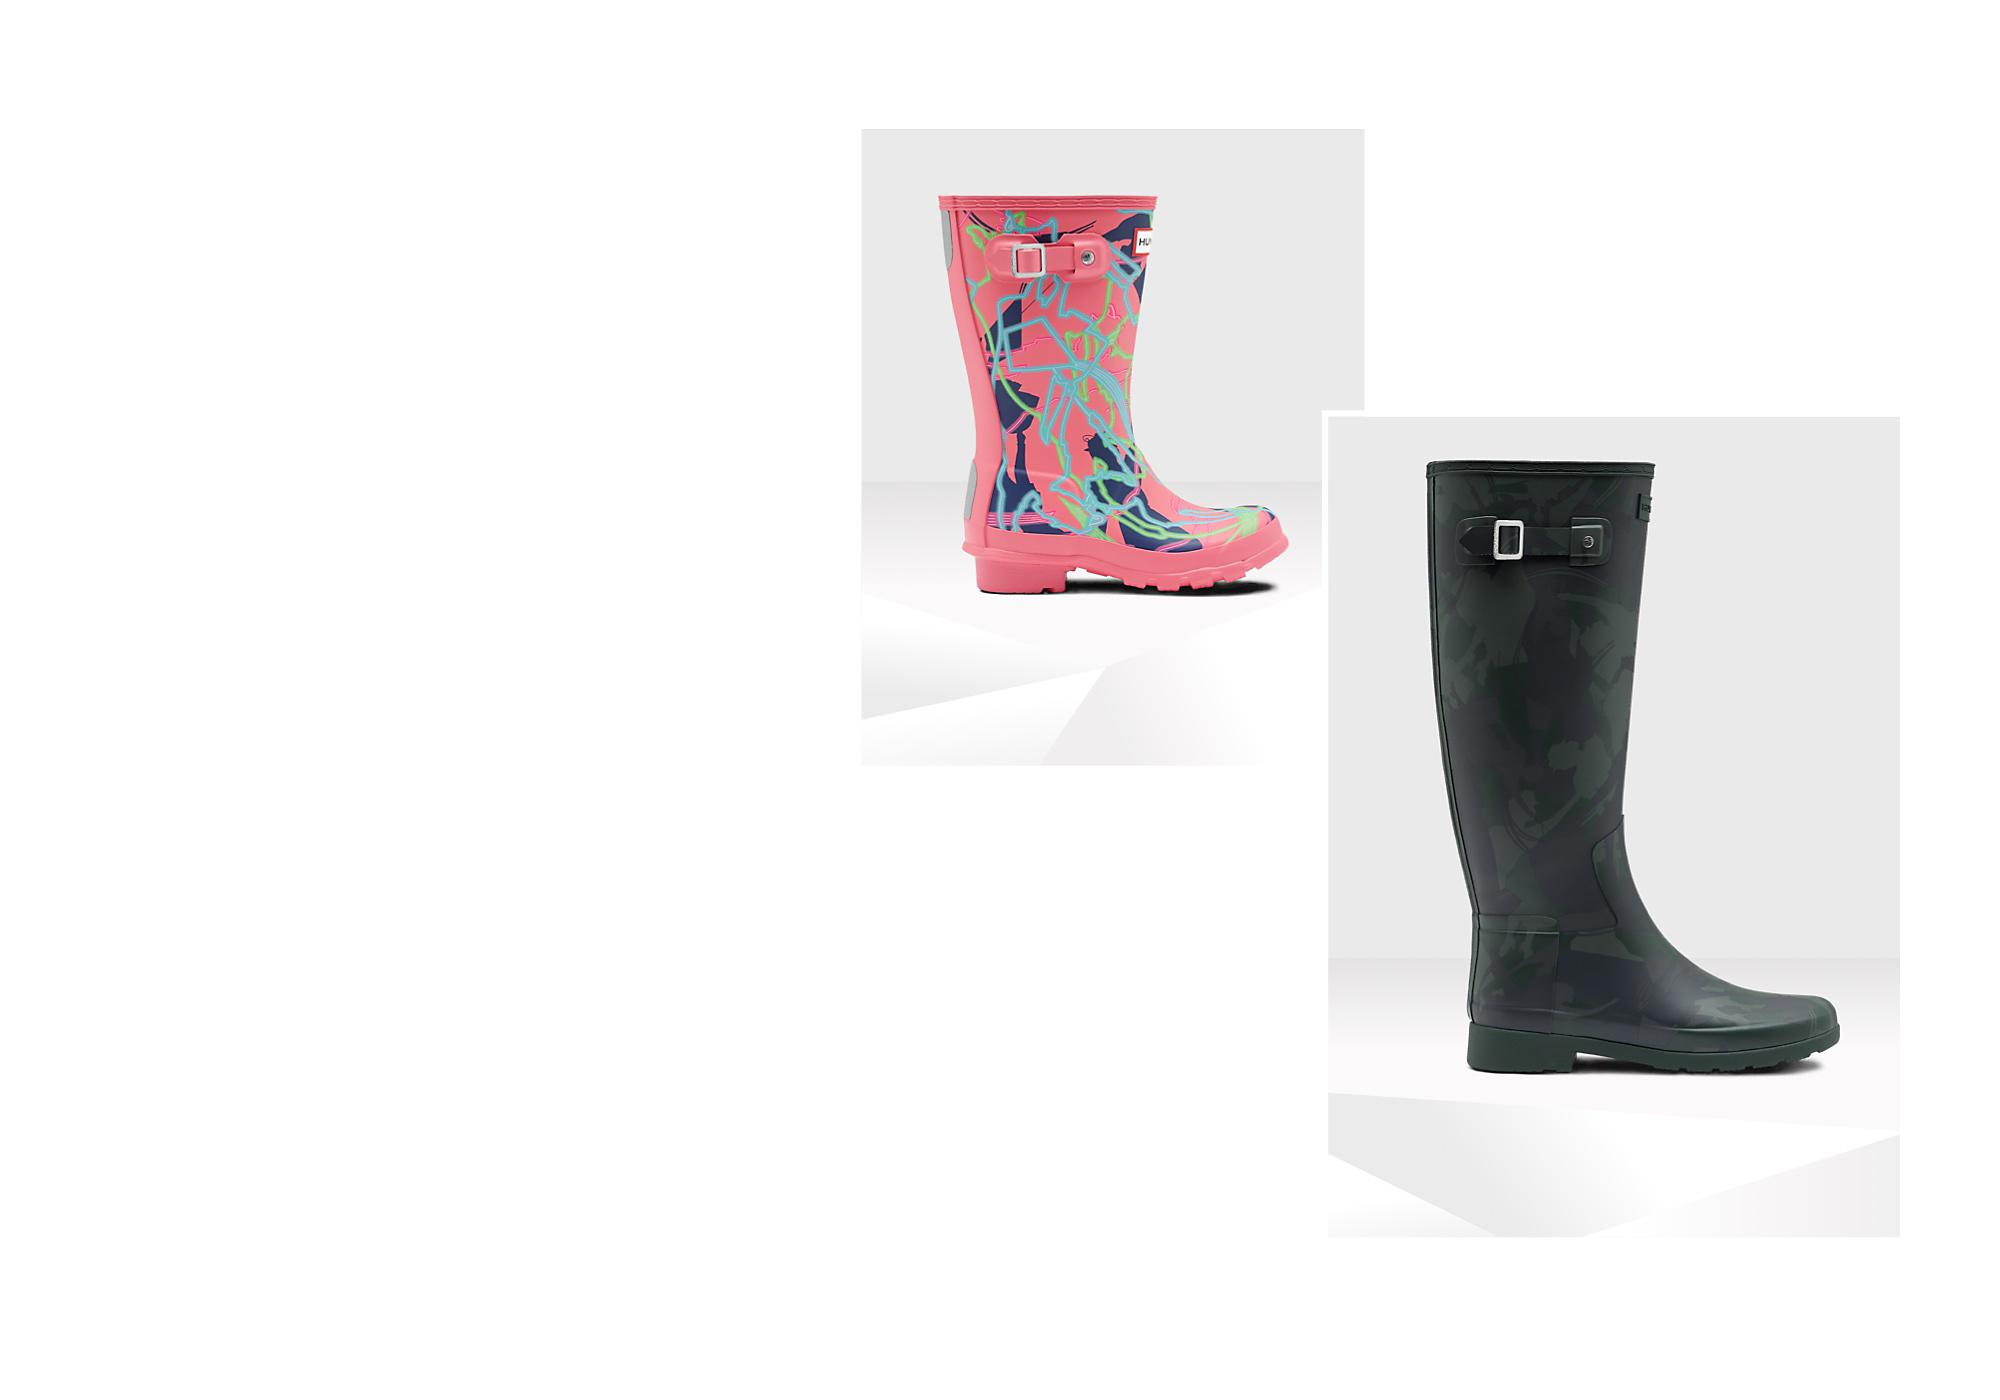 Practically Perfect Wellies Hunter has created these fabulous wellies inspired by Mary Poppins Returns